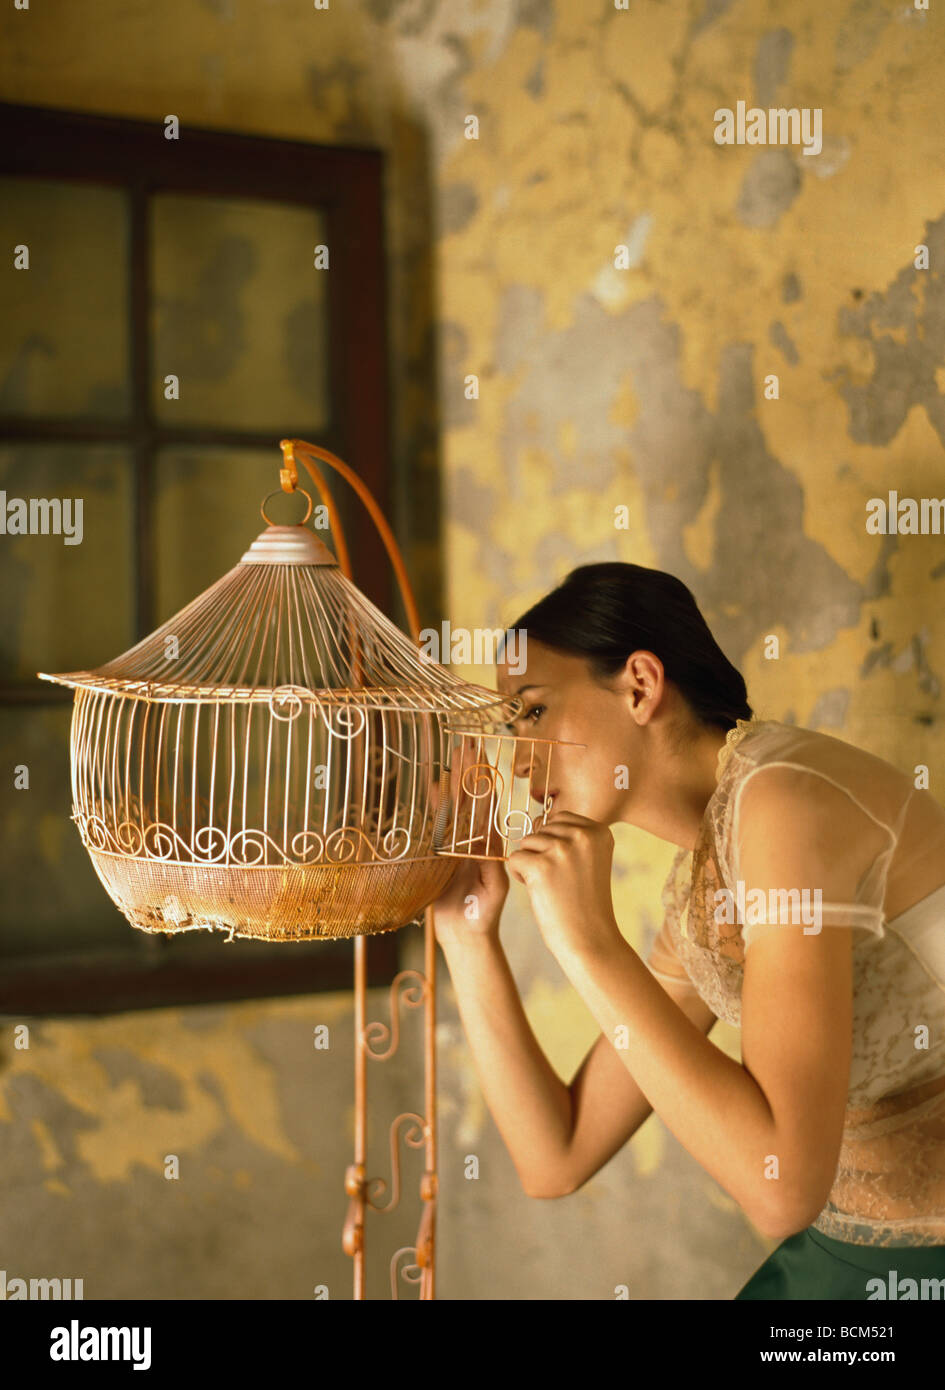 Woman looking inside empty birdcage, side view - Stock Image